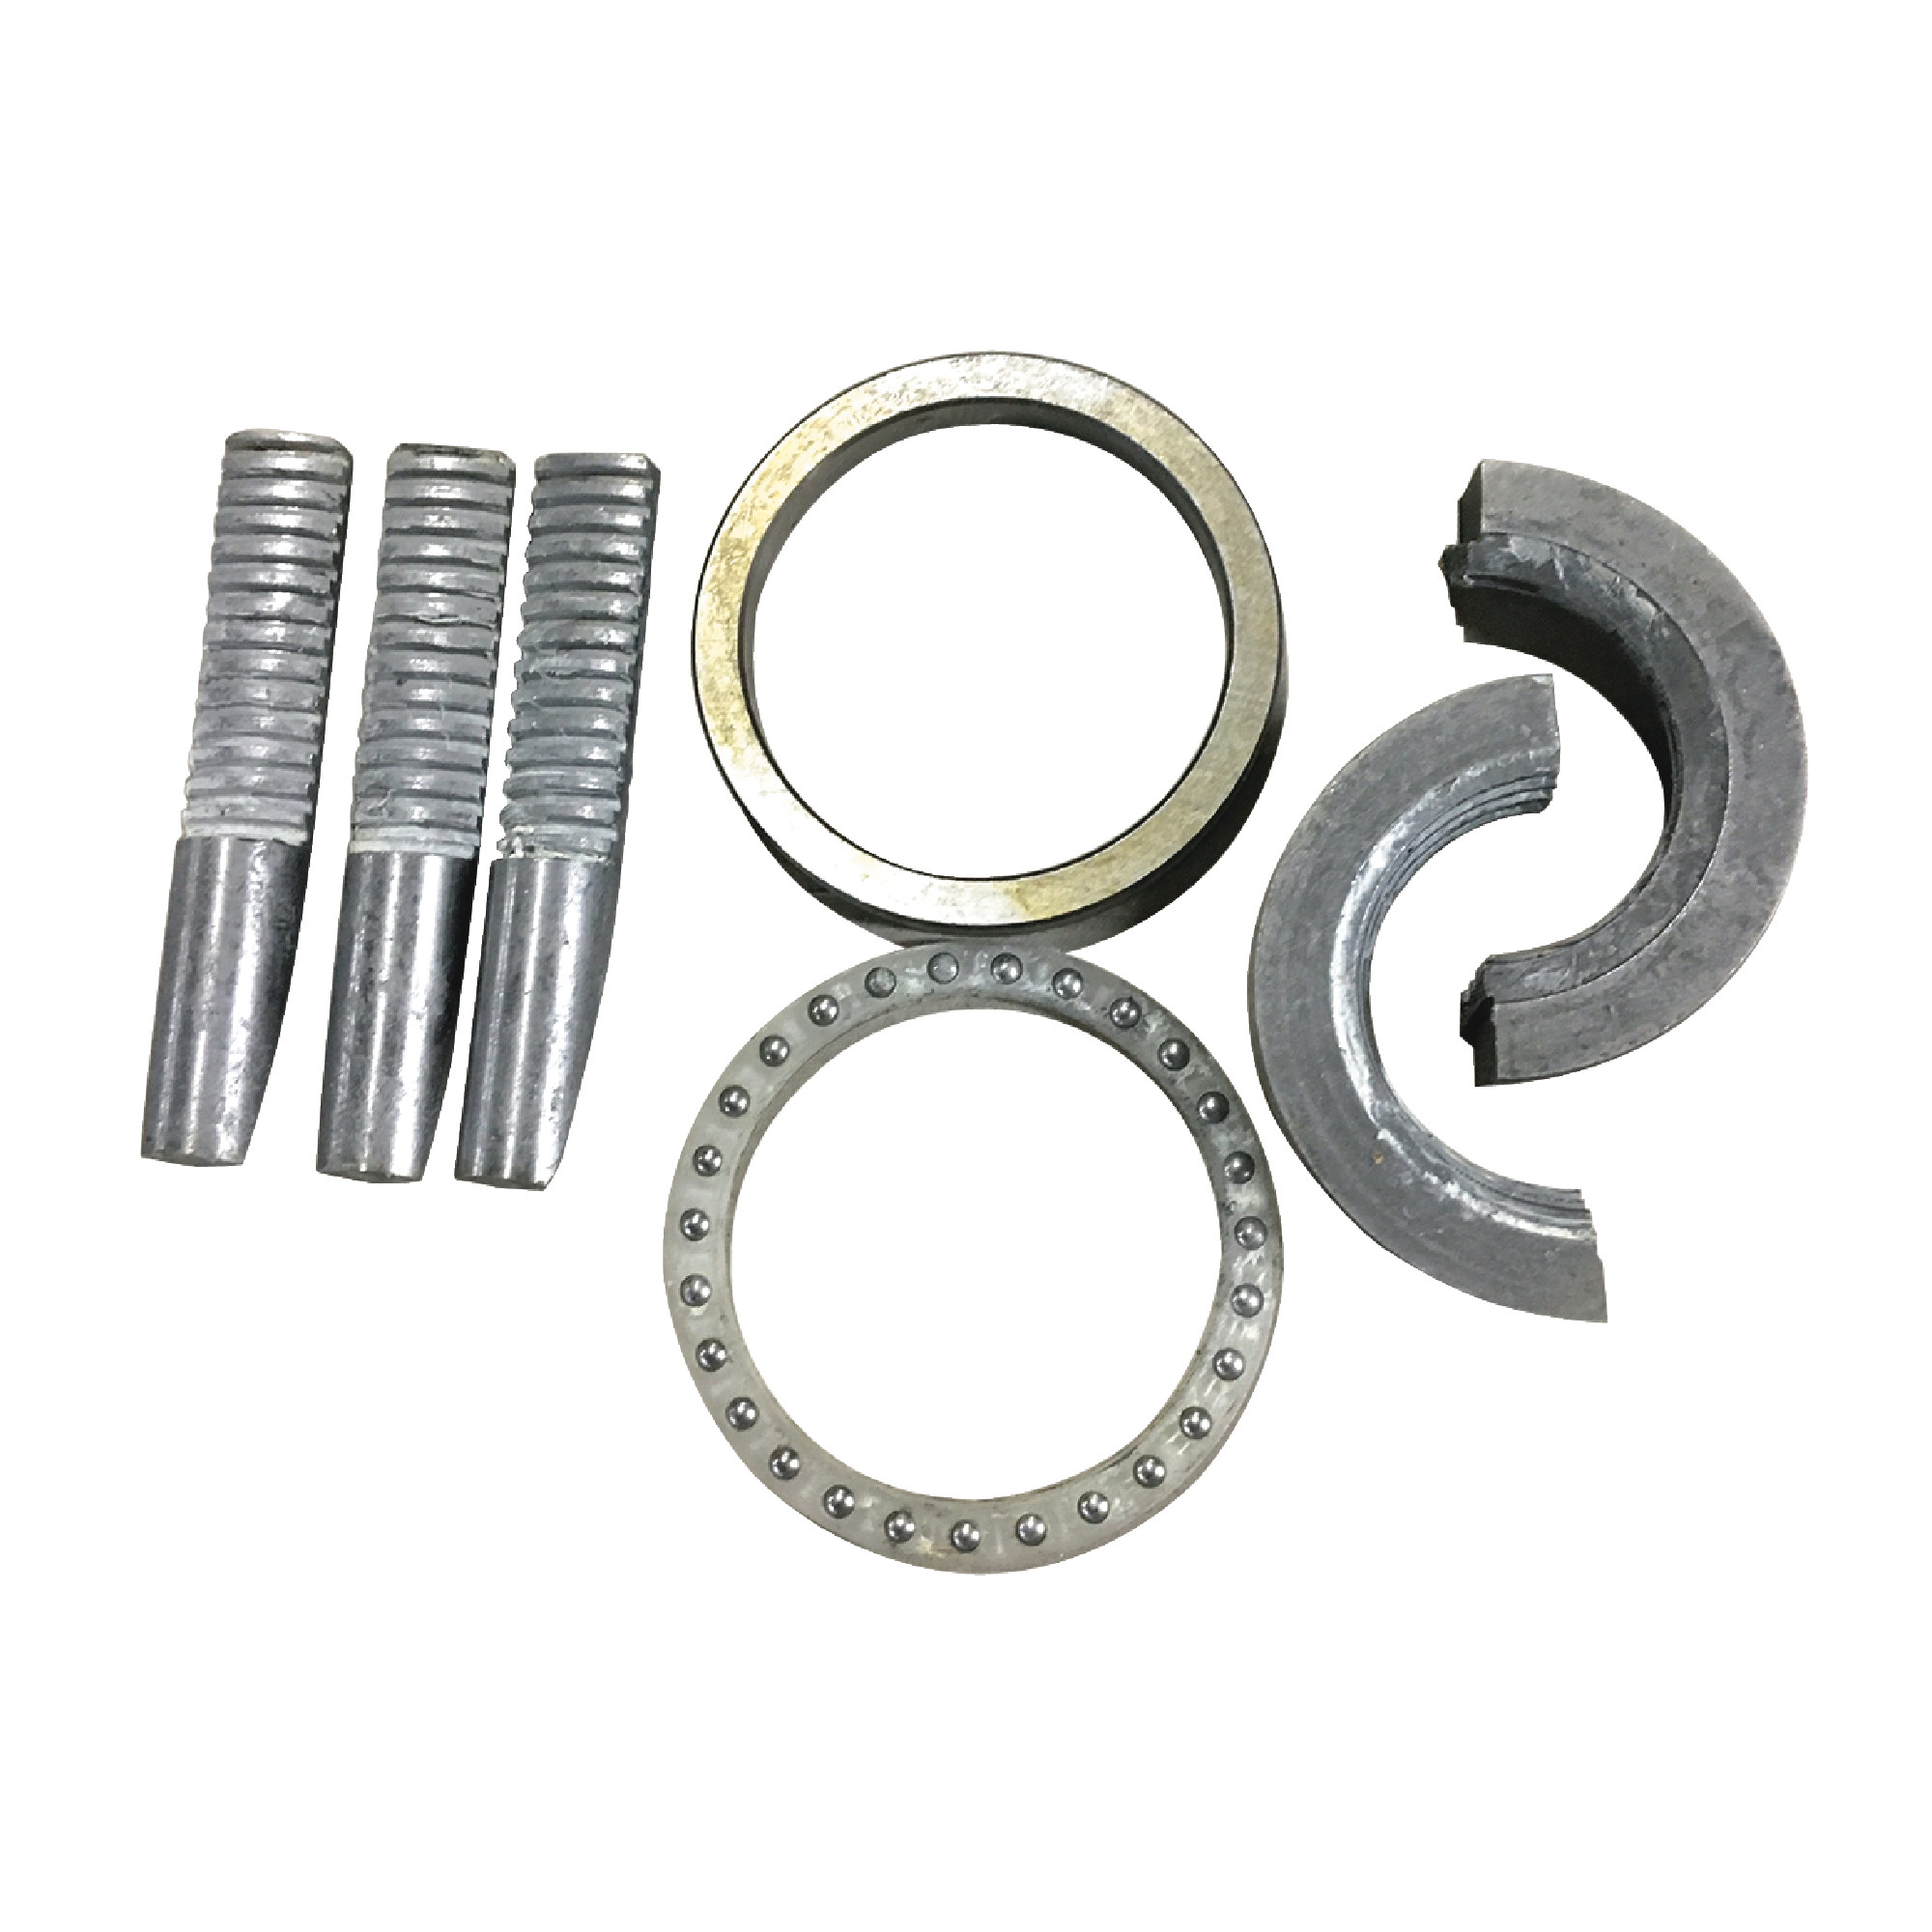 Replacement Jaw and Nut Unit For Ball Bearing Geared Key Super Chuck